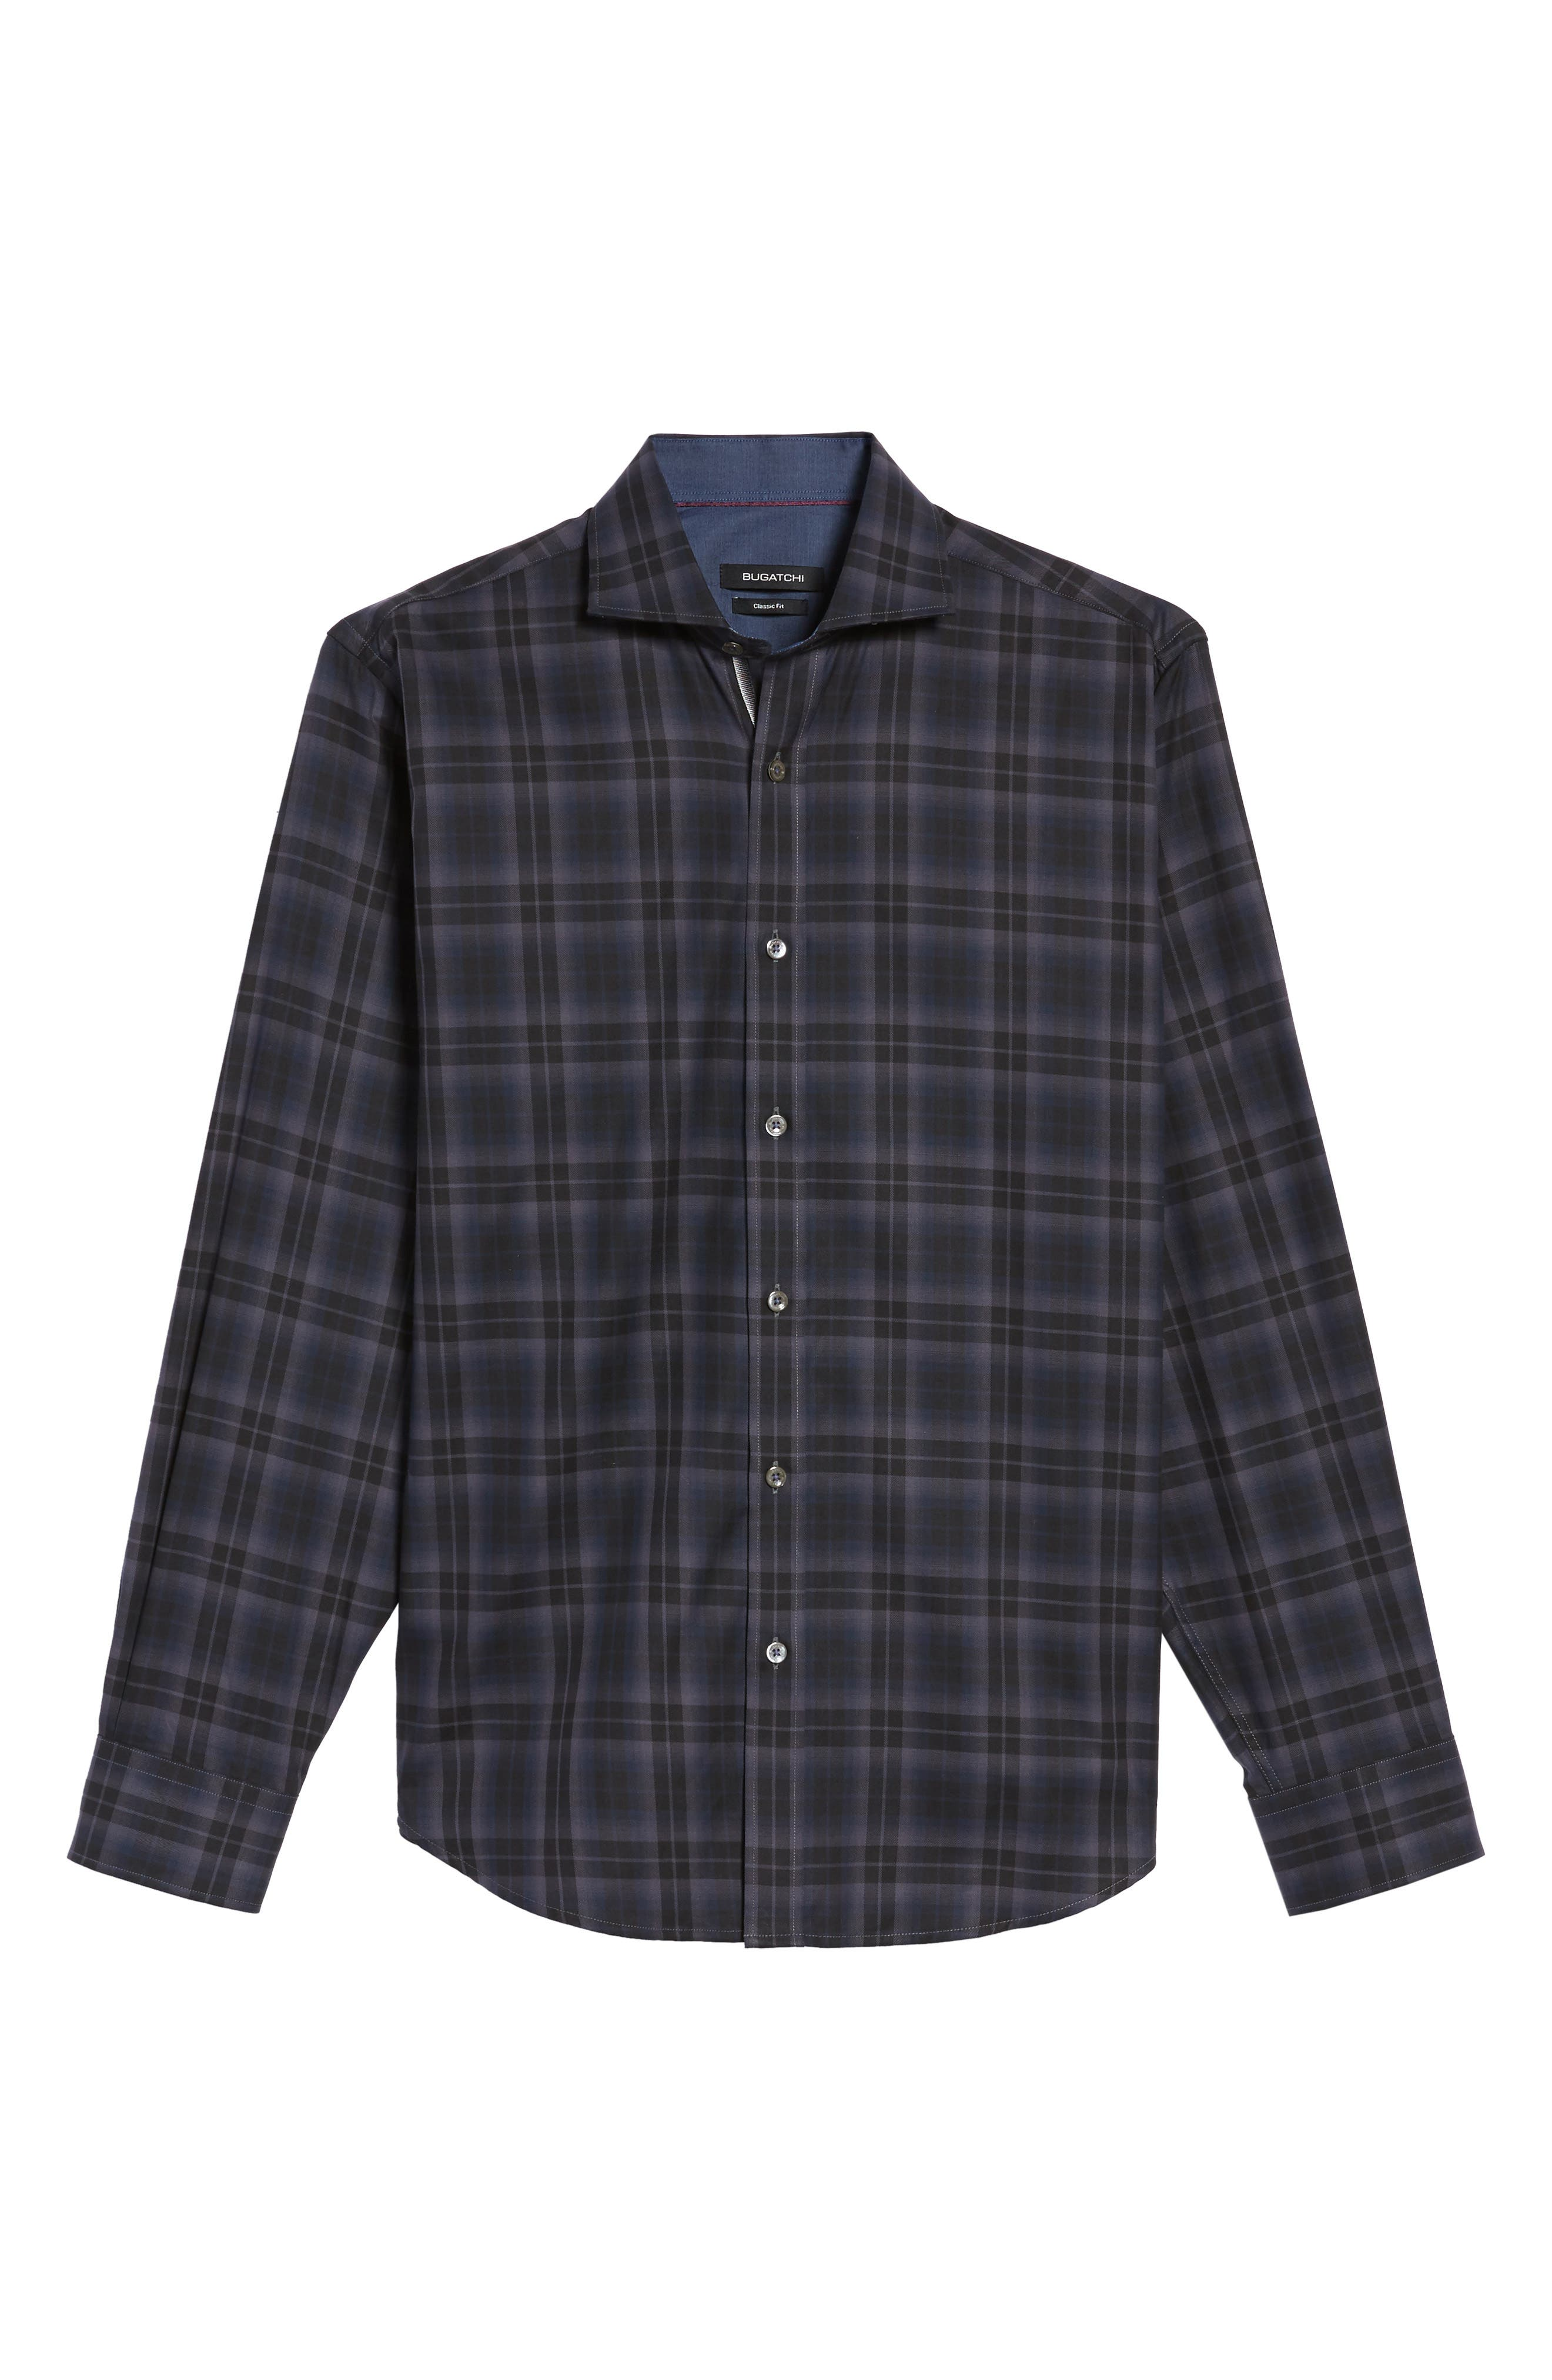 Classic Fit Large Check Twill Sport Shirt,                             Alternate thumbnail 6, color,                             020